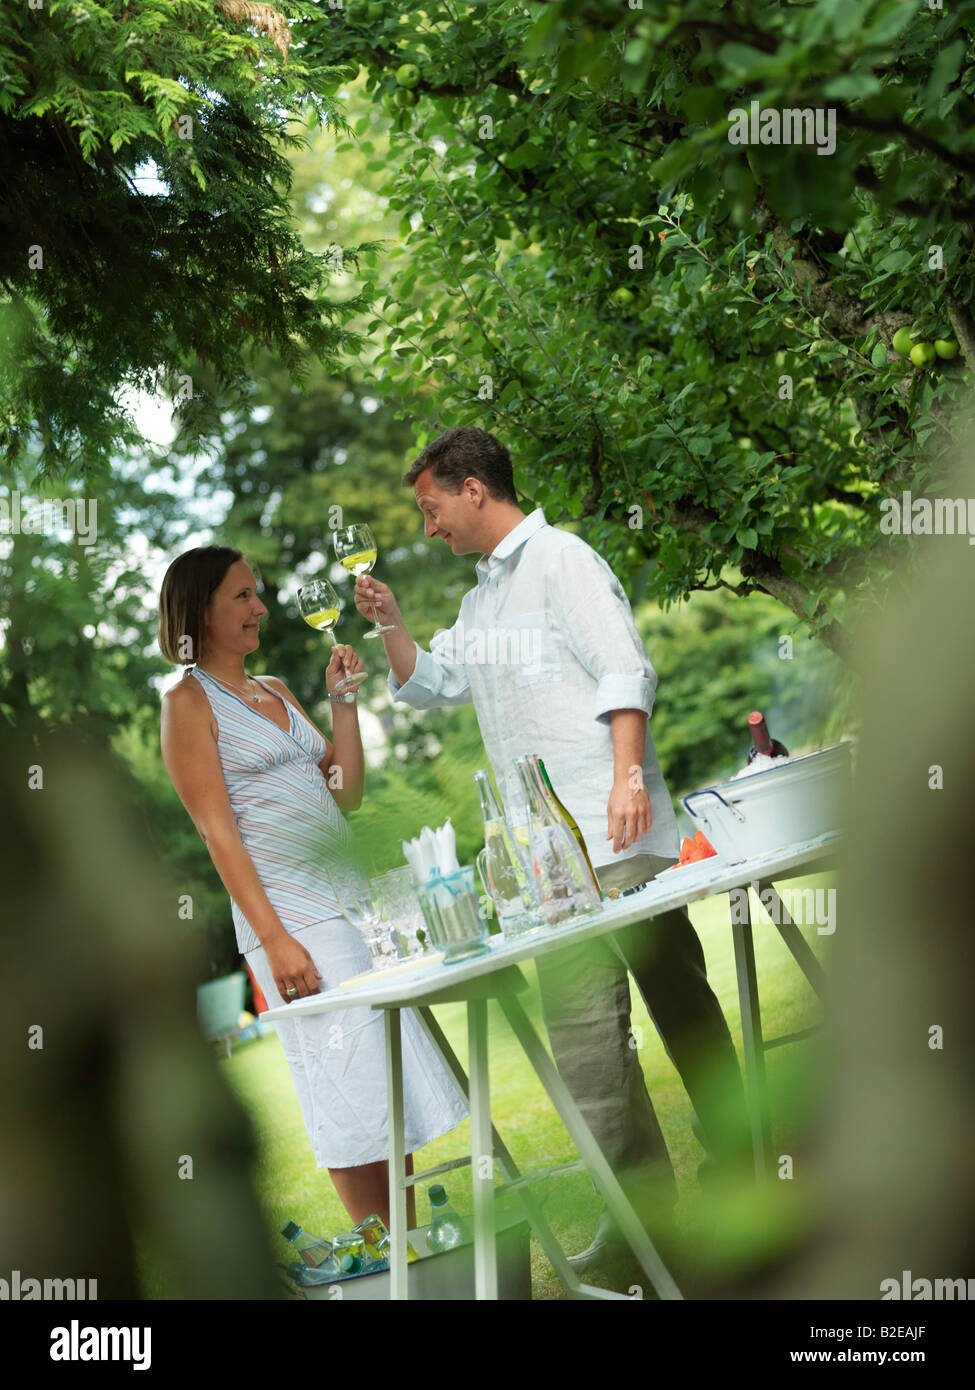 Couple toasting with wineglasses in garden - Stock Image